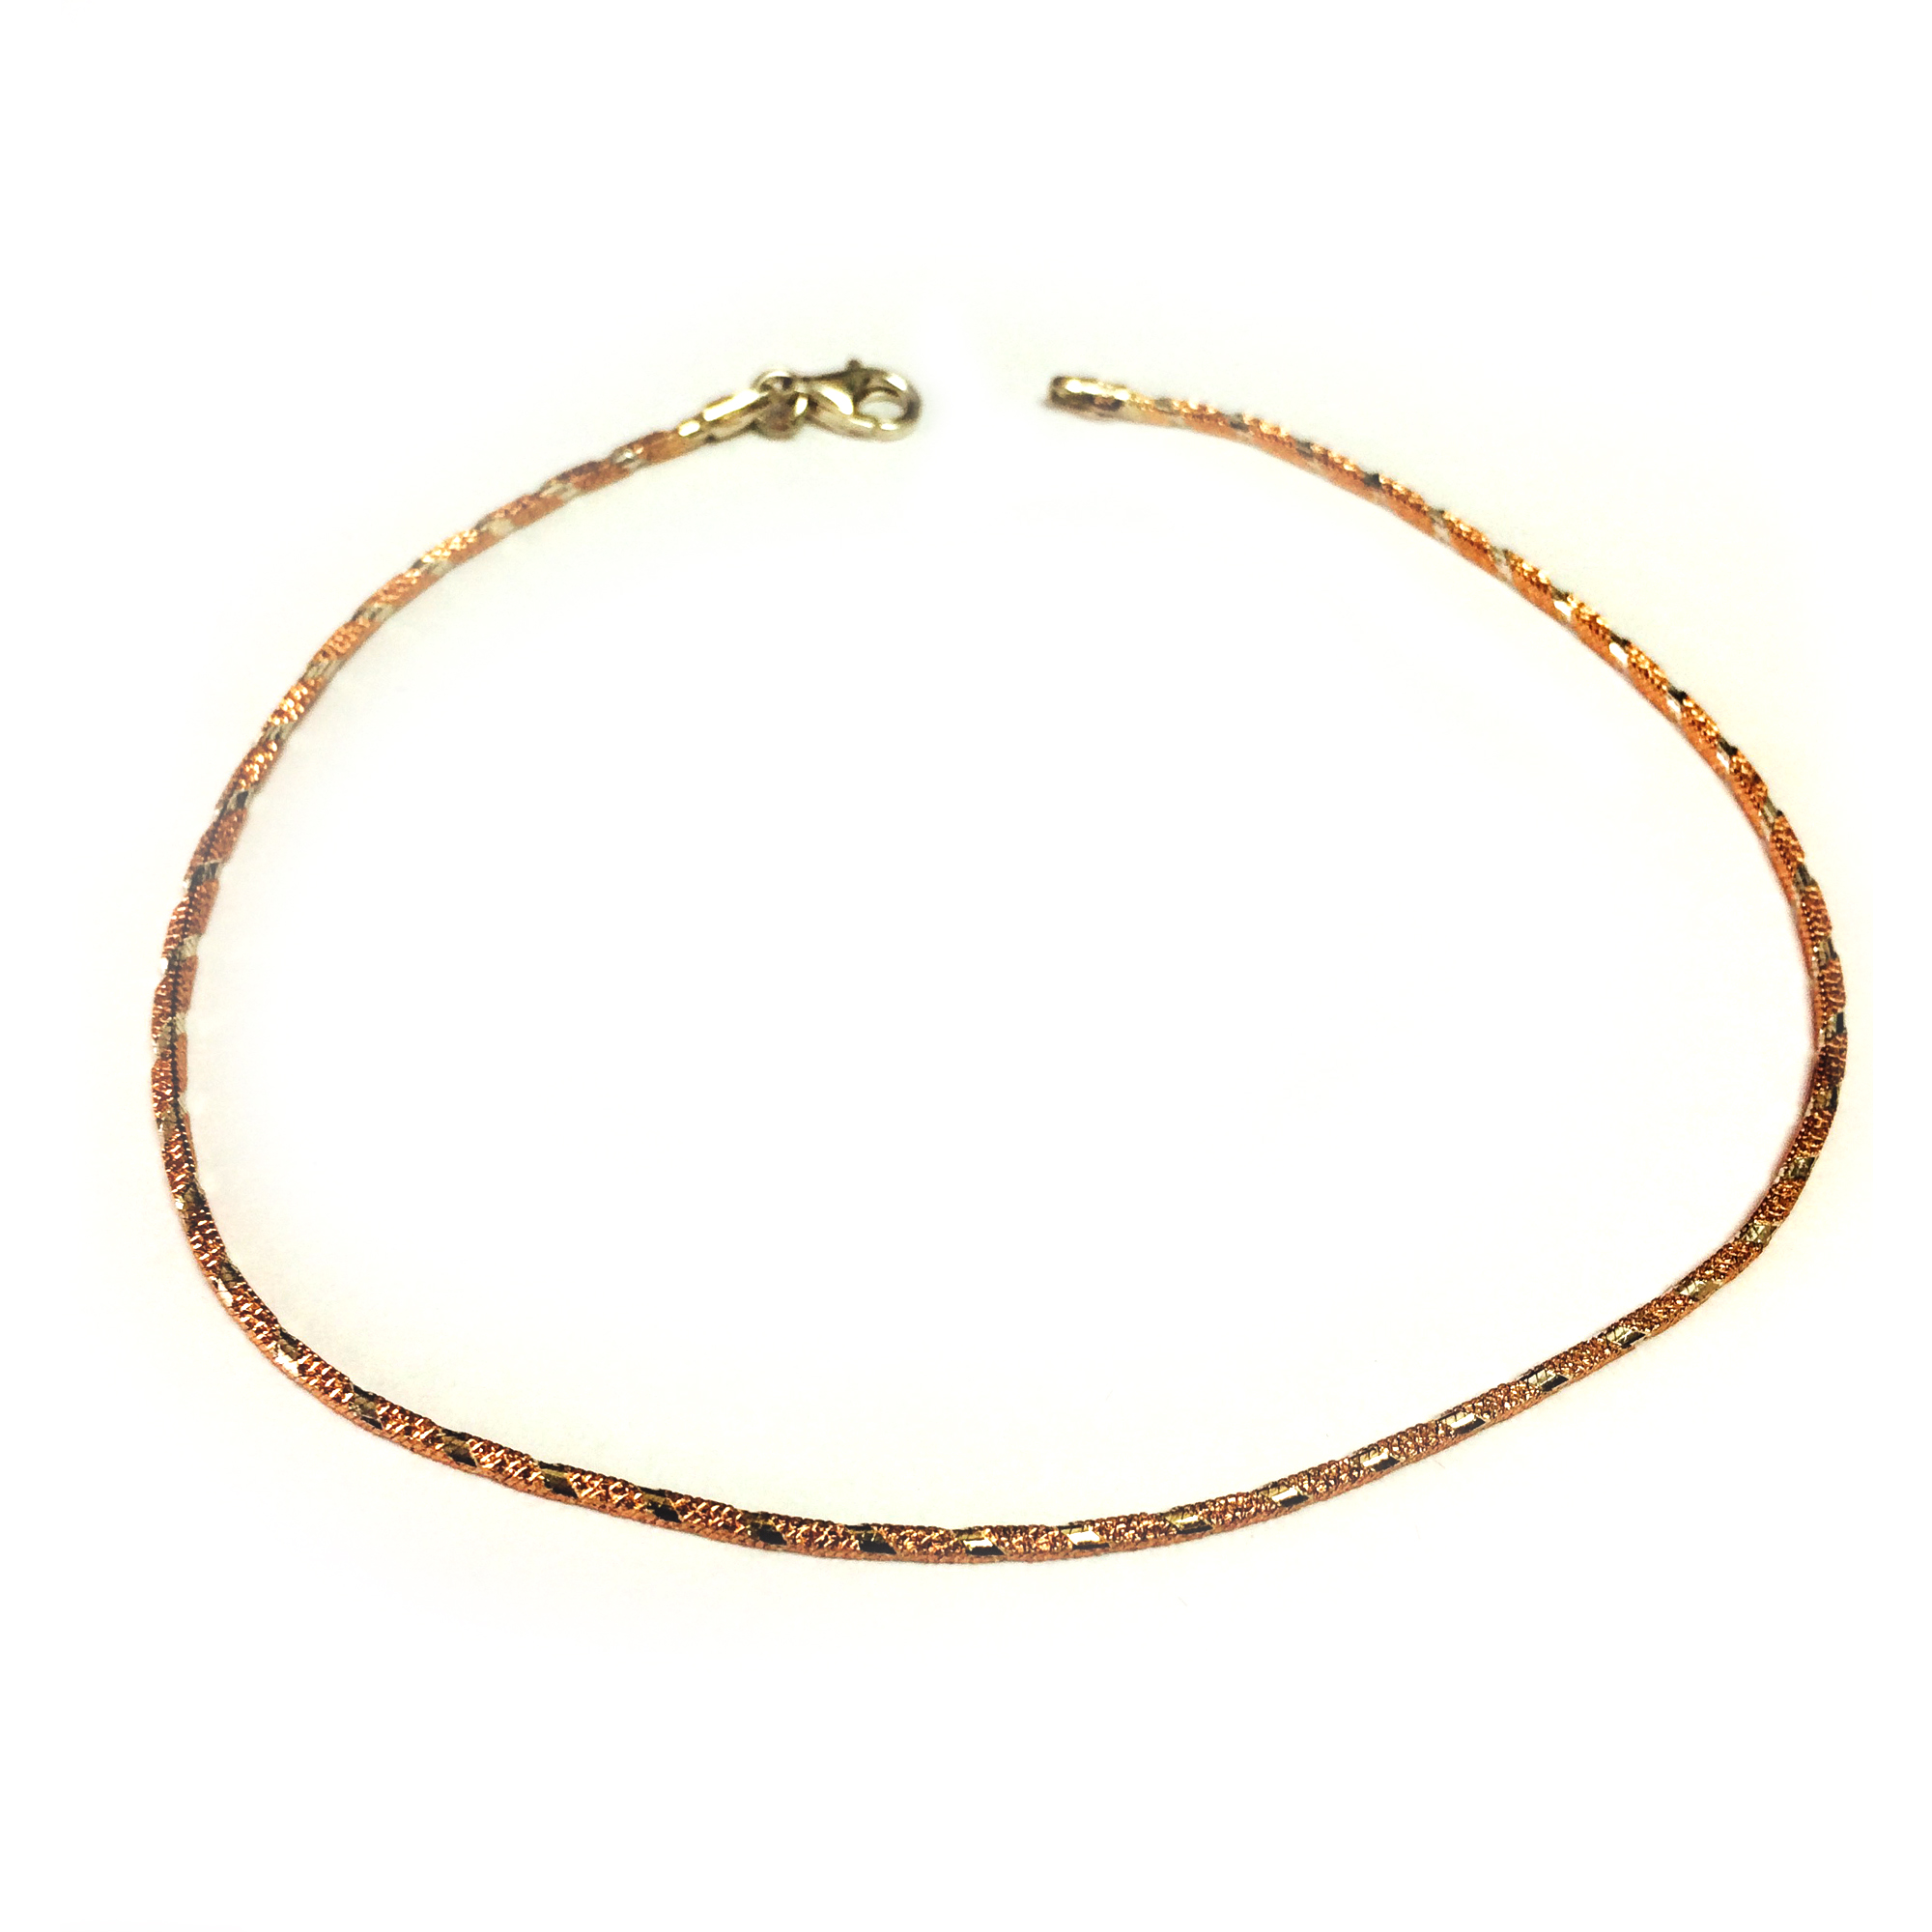 Pink And White Diamond Cut Anklet In Sterling Silver, 10″